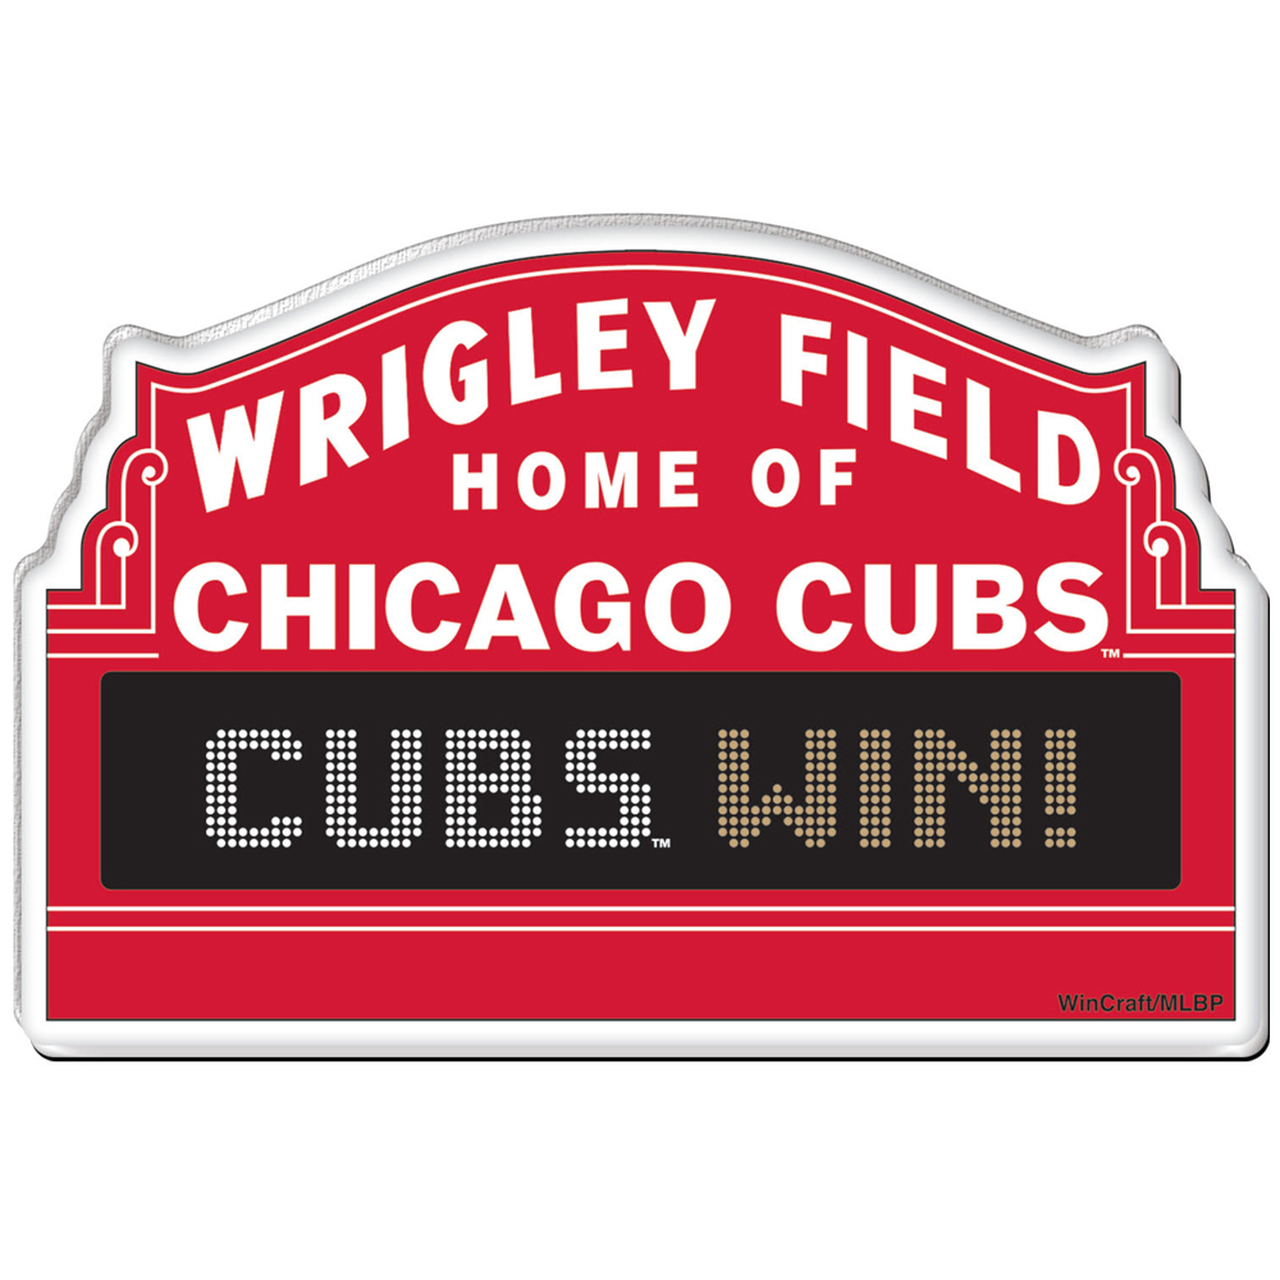 Wrigley field sign clipart clipart images gallery for free.